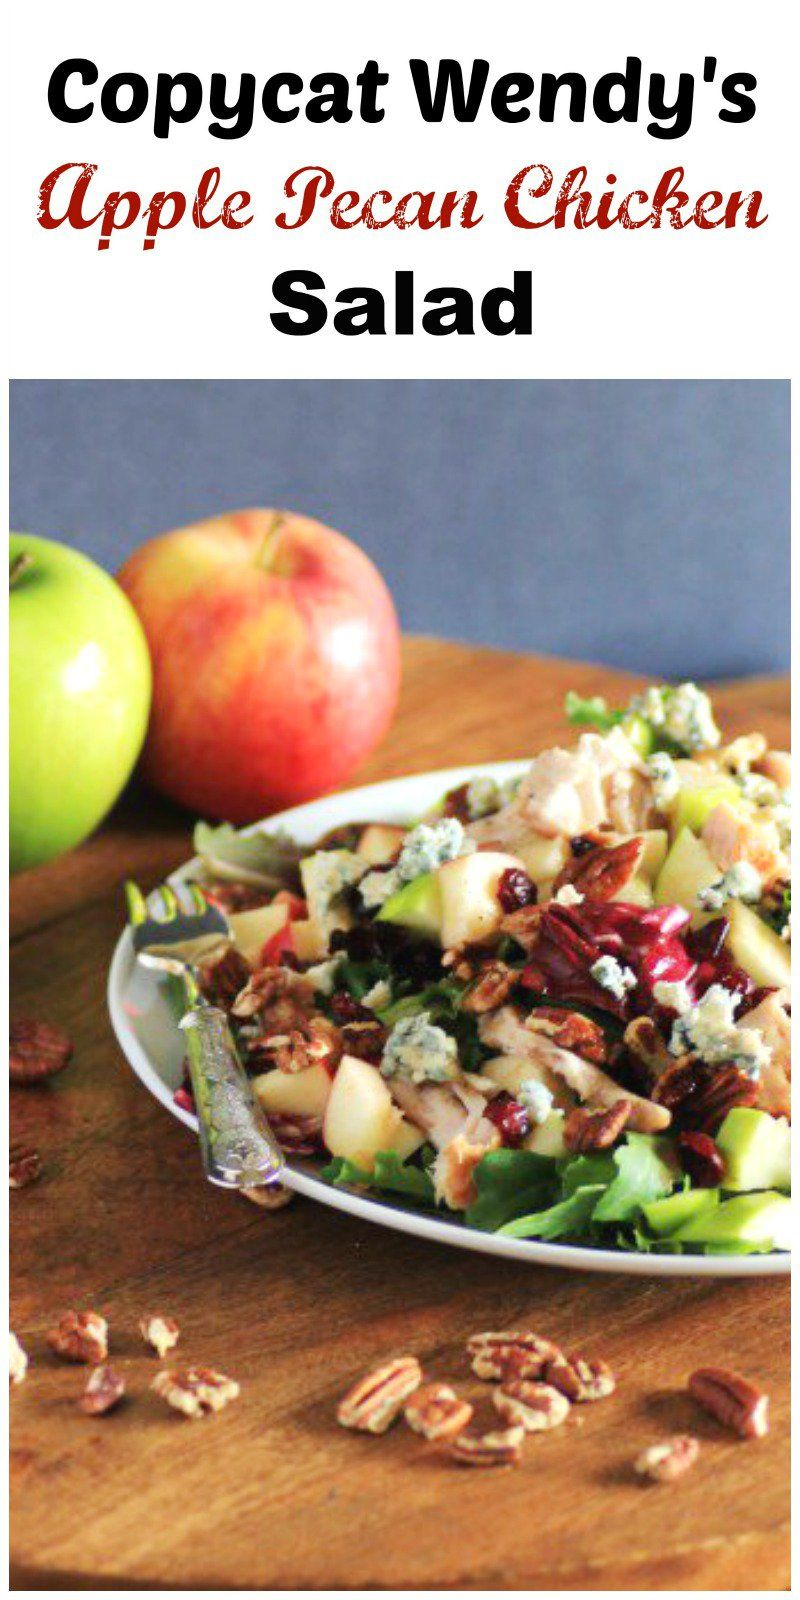 Copycat Wendy's Apple Pecan Chicken Salad by Noshing With